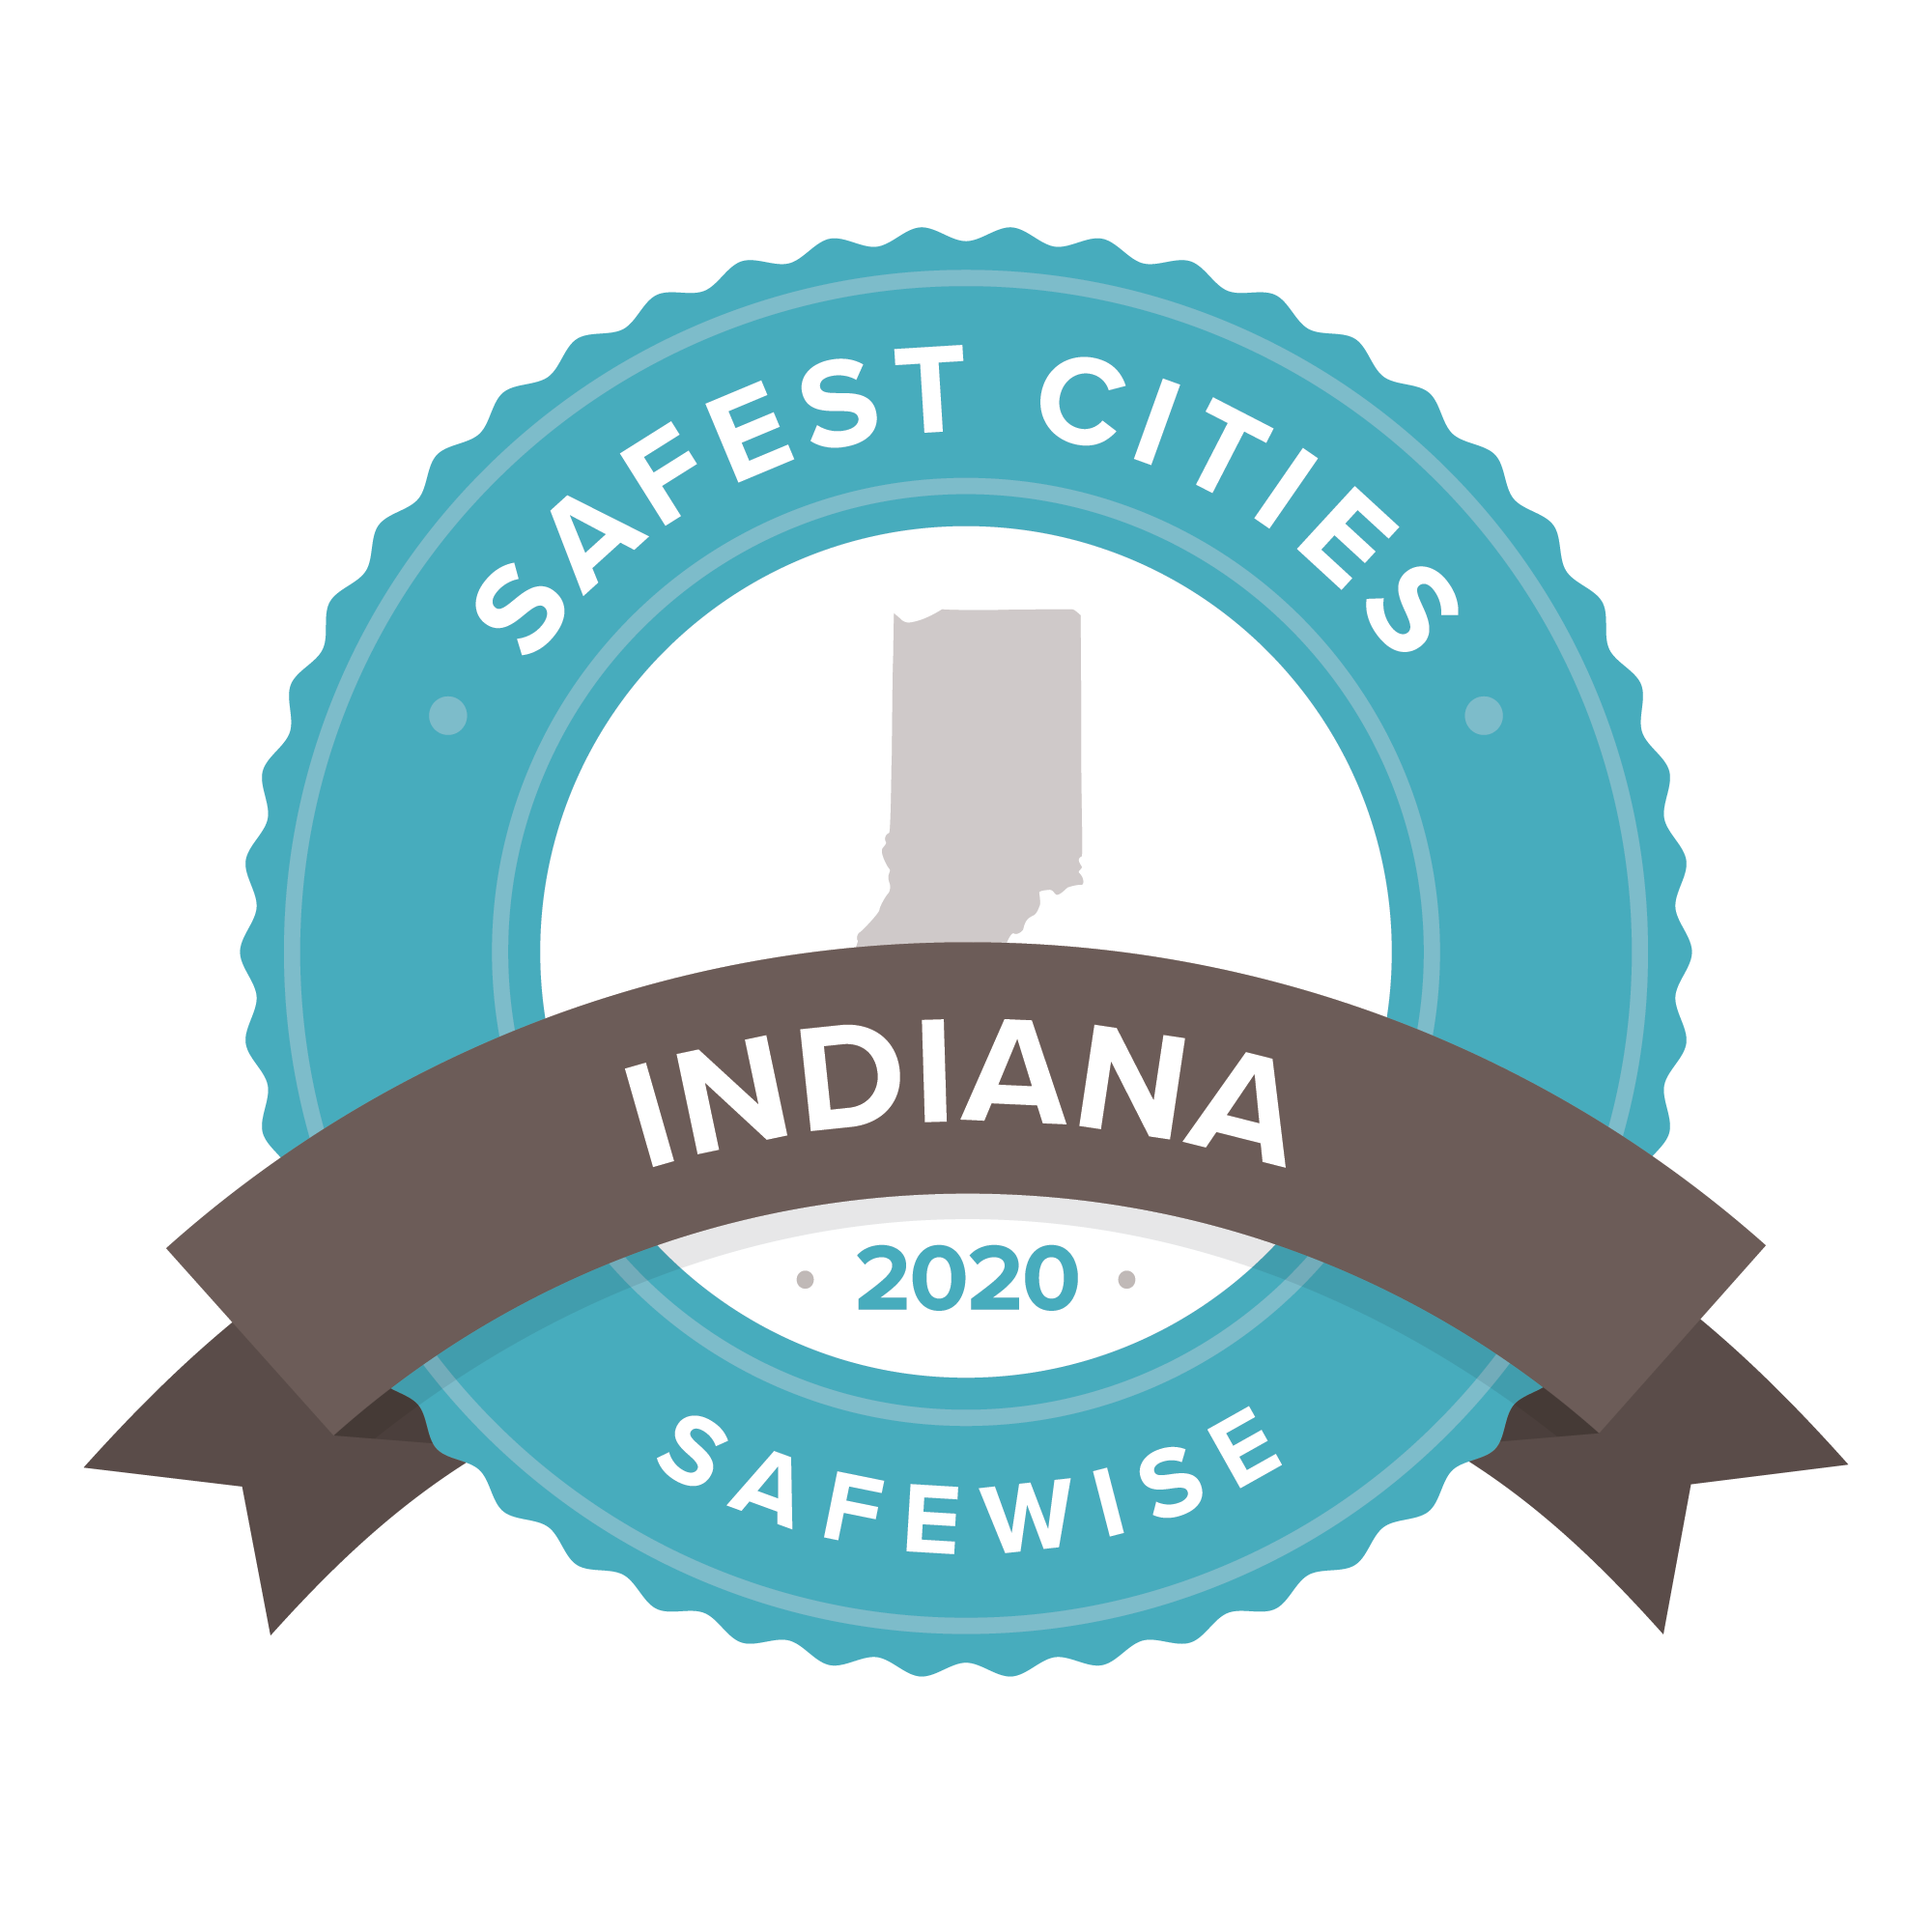 Indiana Safest Cities Badge 2020